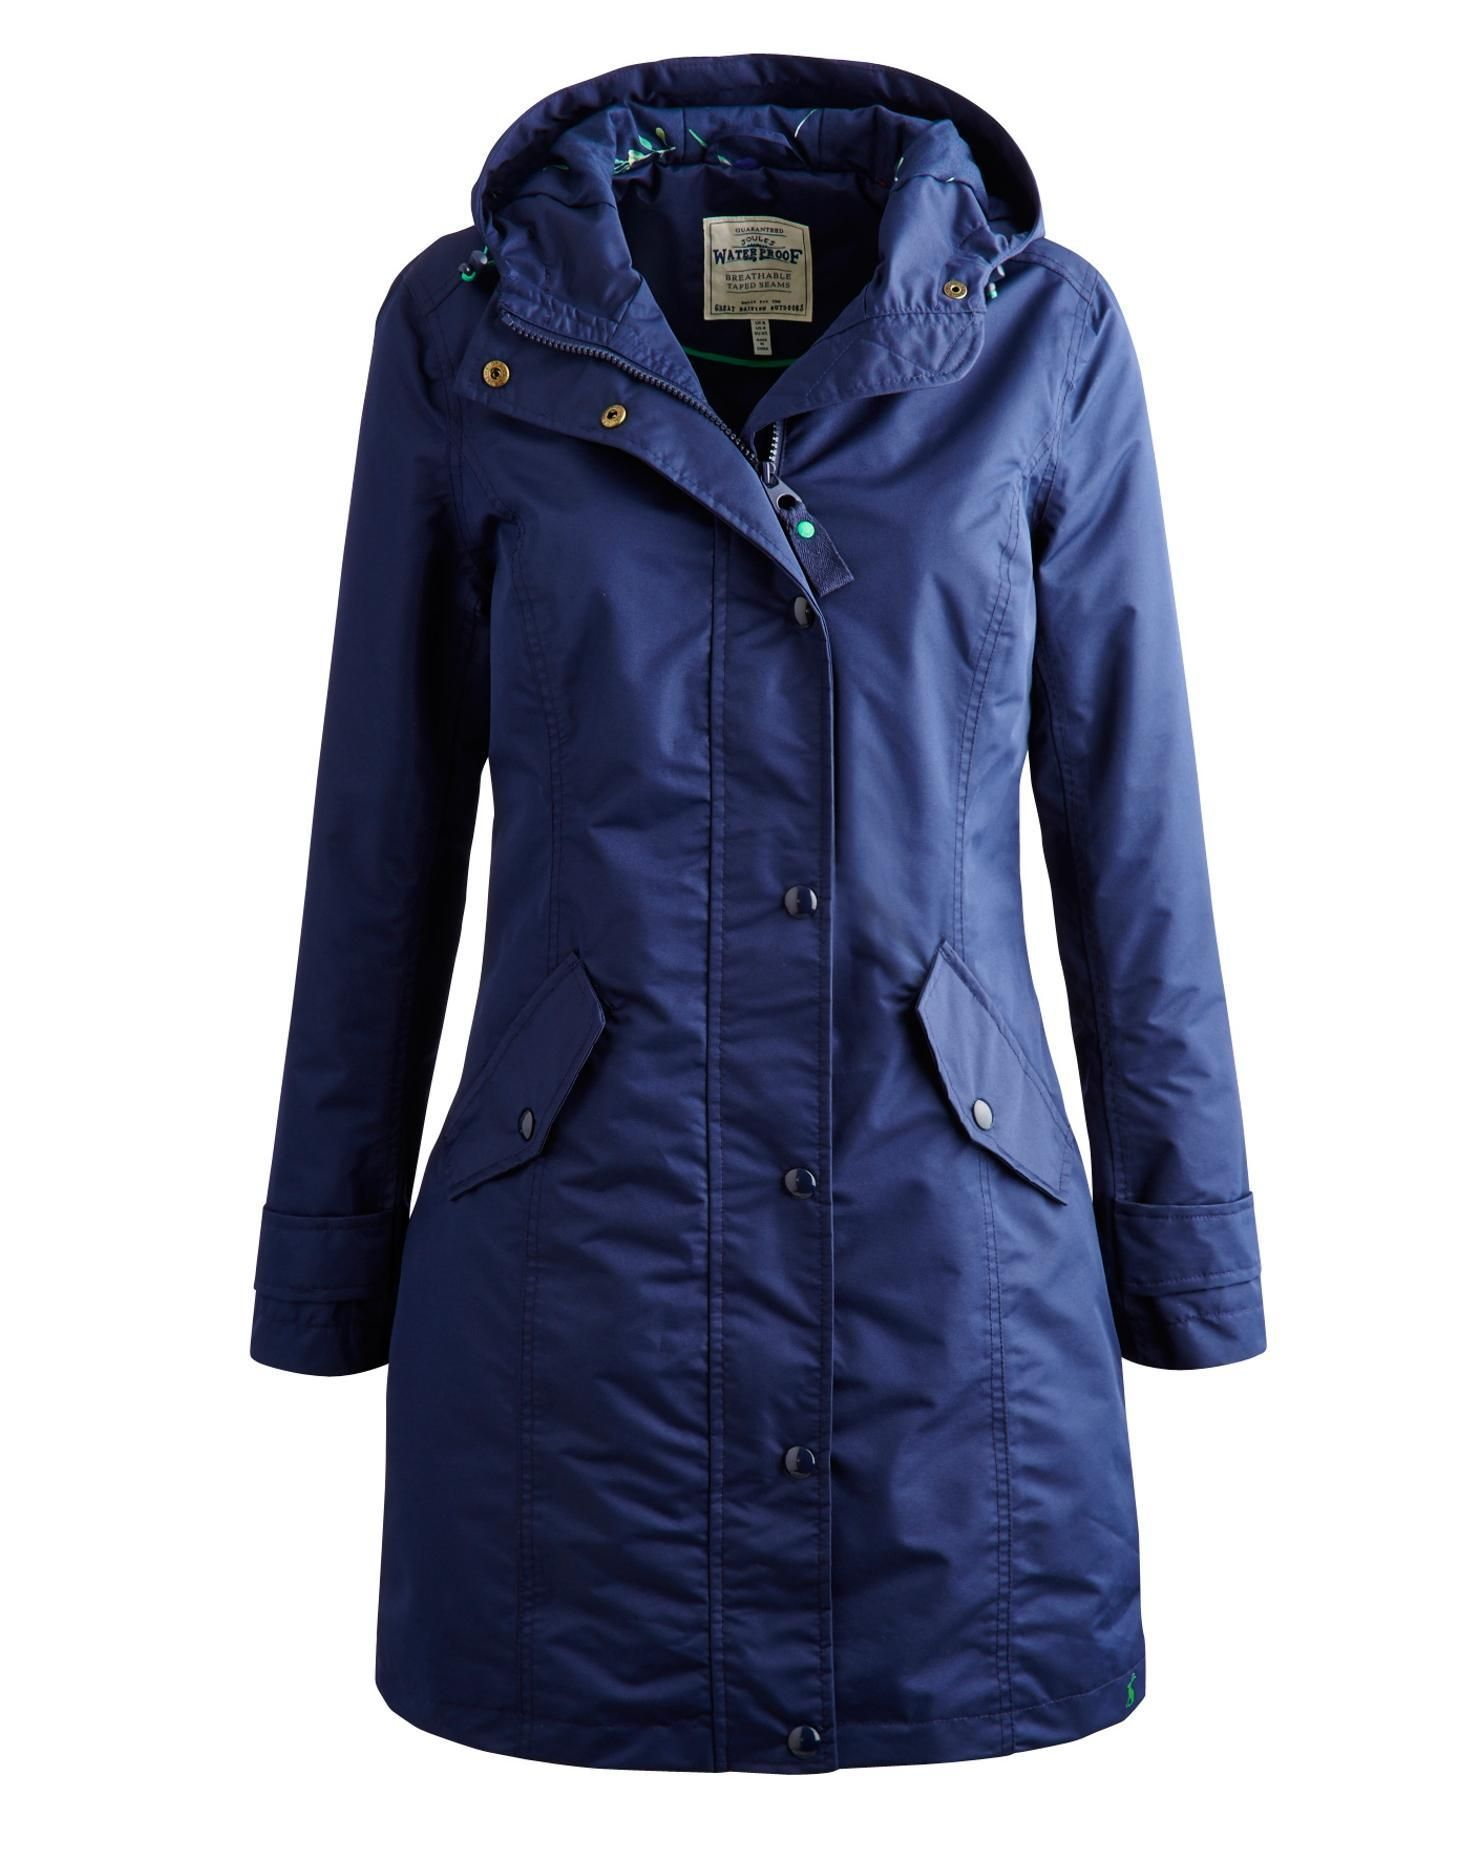 WINDERMERE Womens Longline Waterproof Coat | Waterproof coat